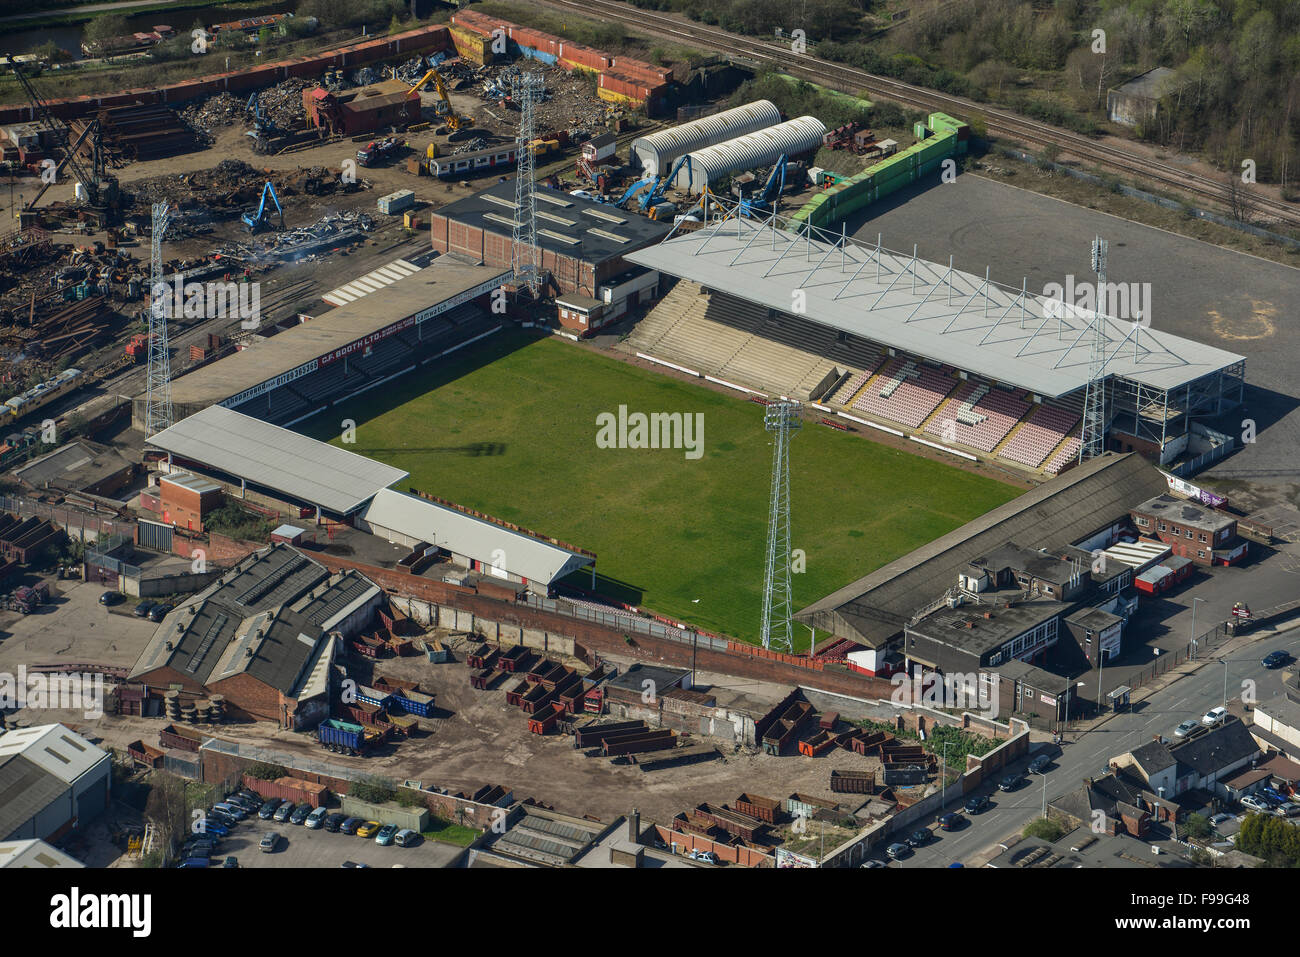 An aerial view of Millmoor, the former home of Rotherham United FC - Stock Image